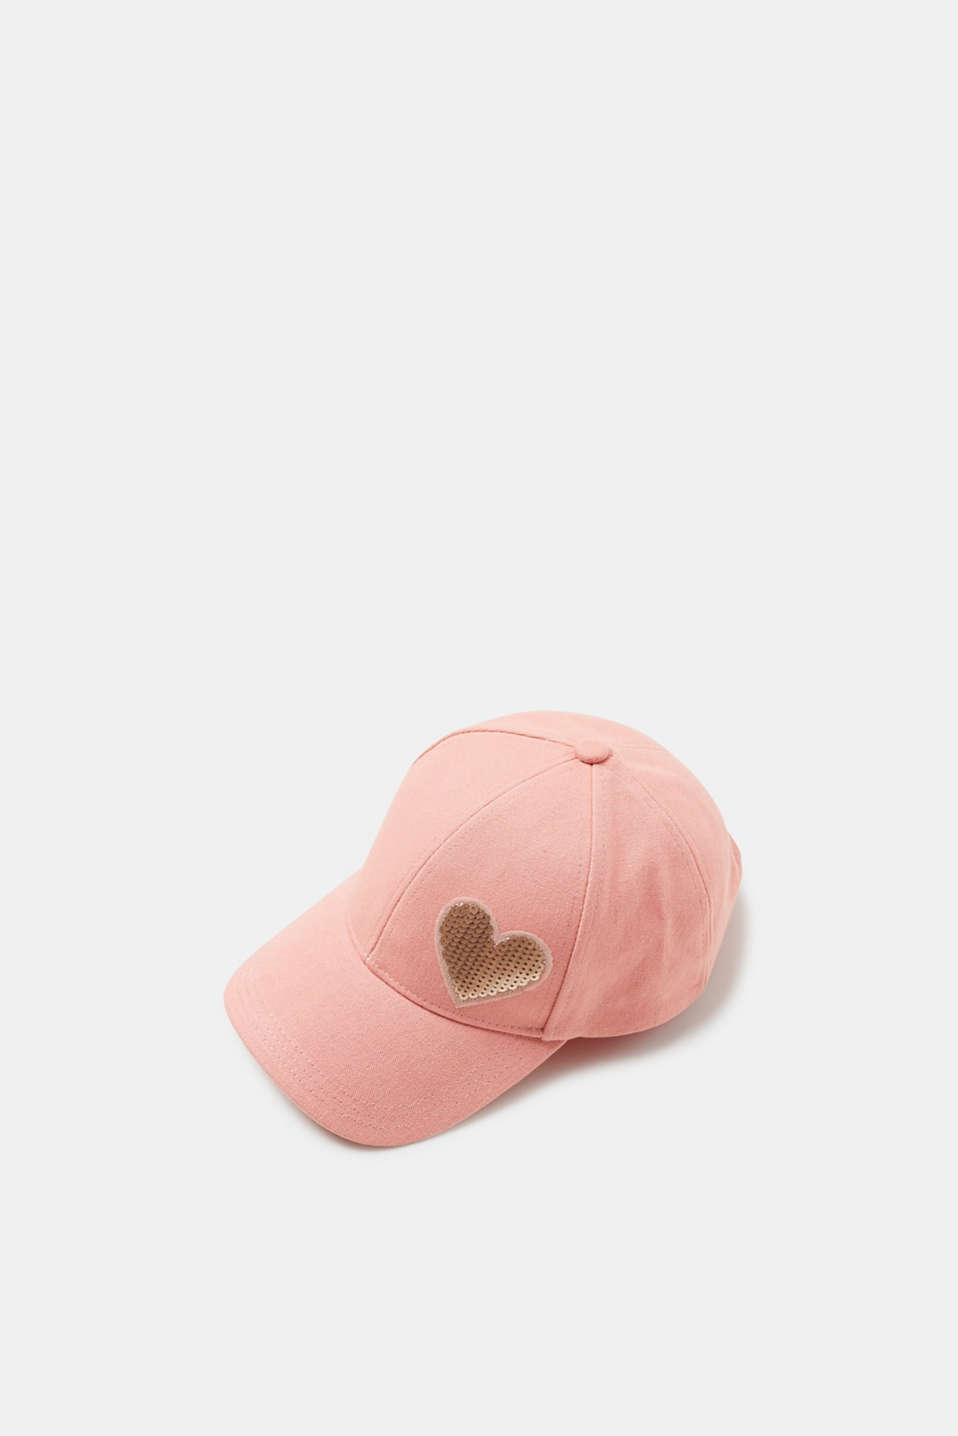 This cotton canvas baseball cap is a feminine trend style thanks to the sequin heart.